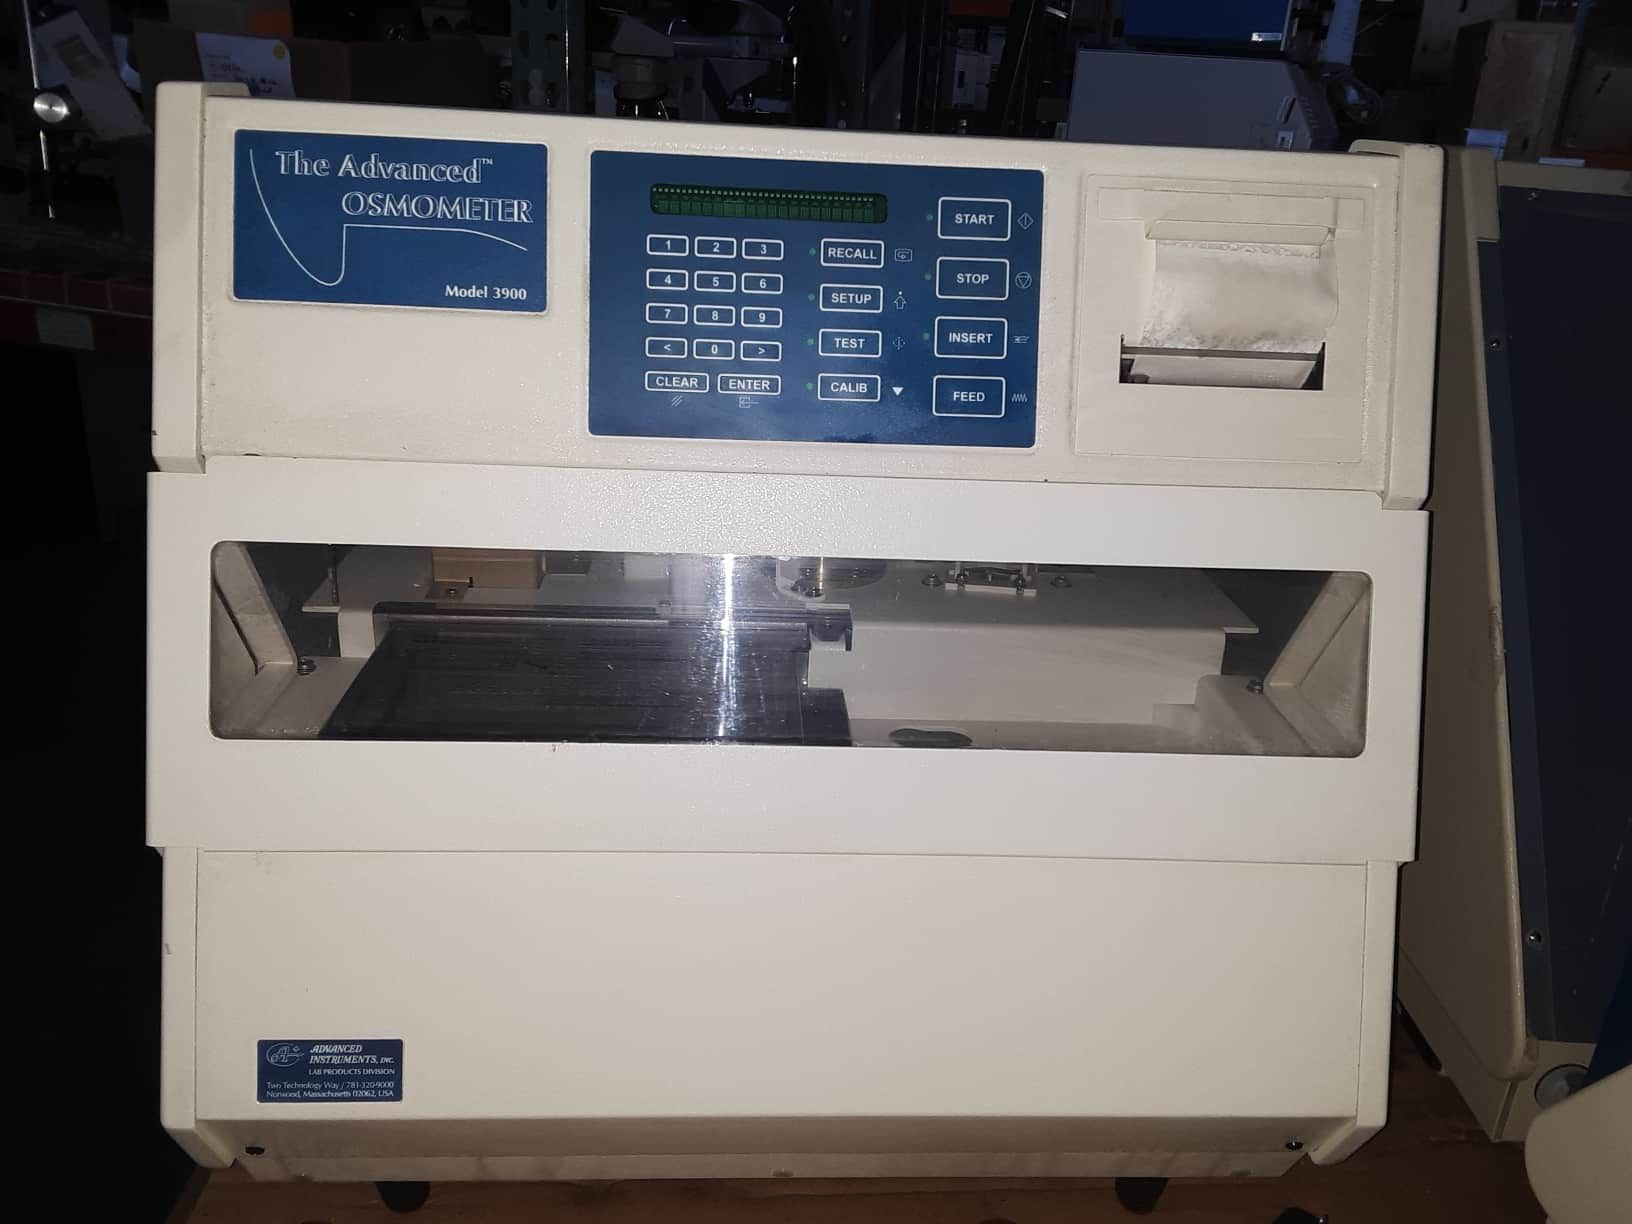 Advanced Instruments 3900 multi sample osmometer